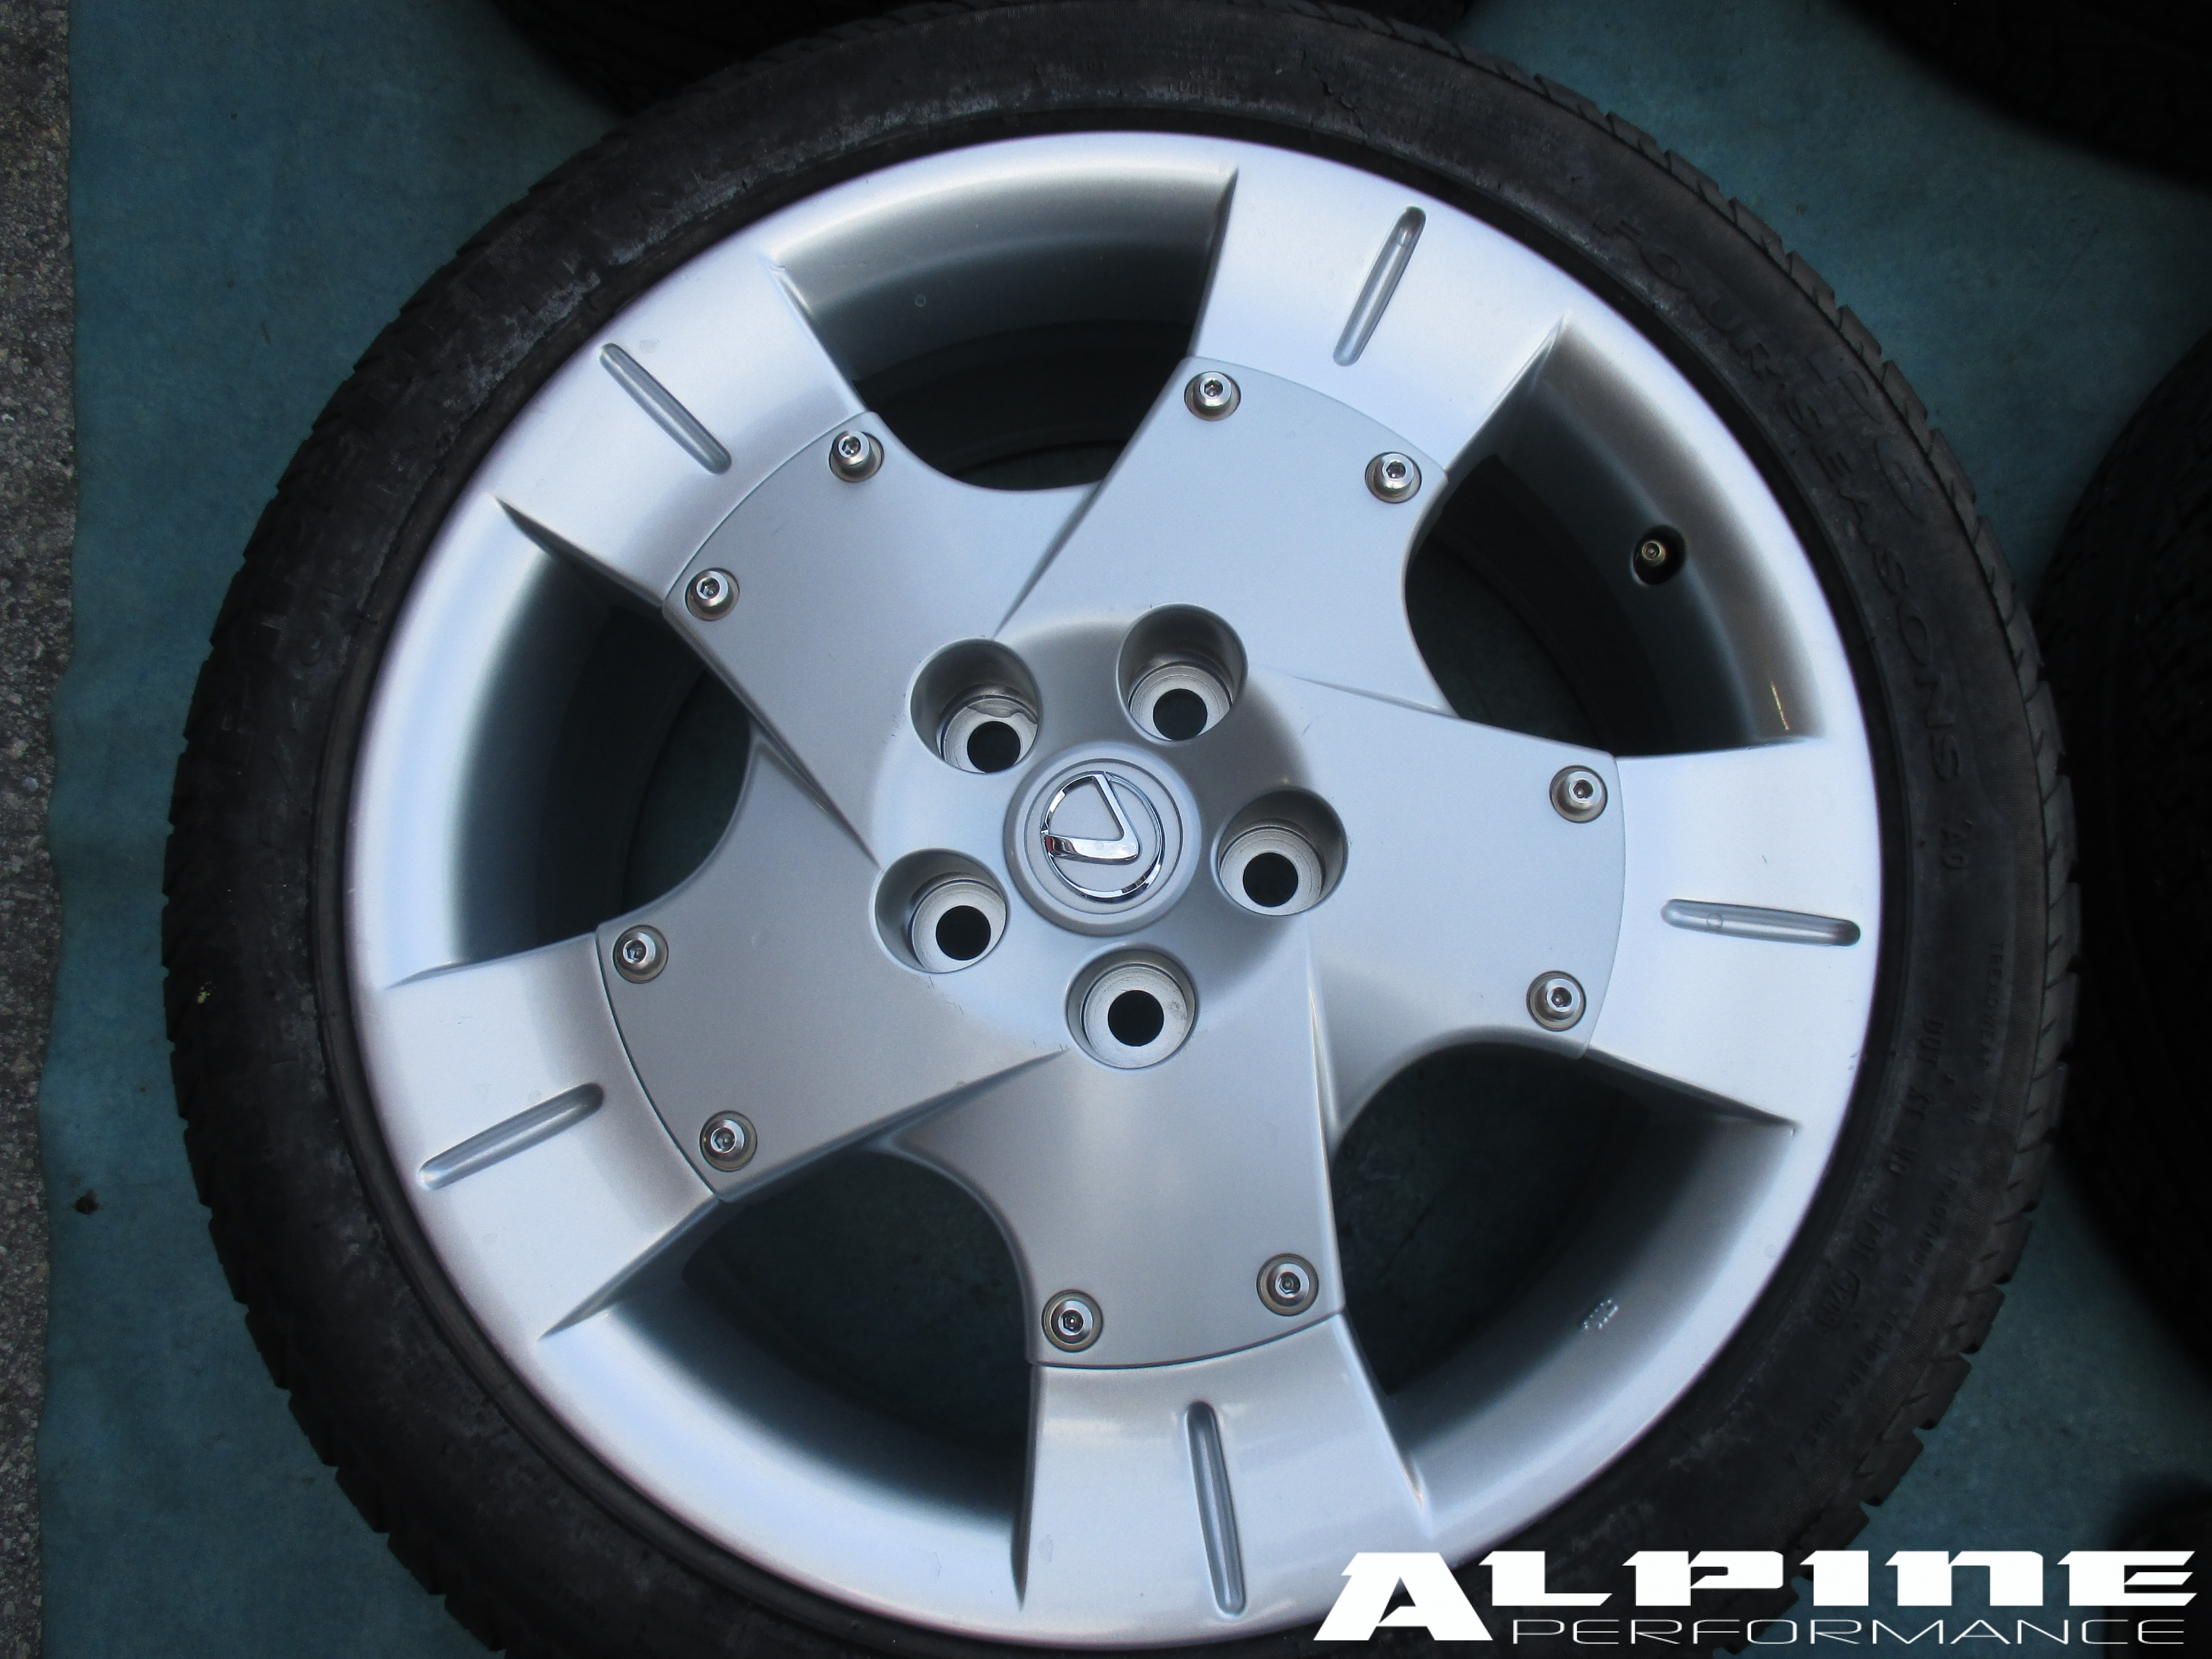 Origianal 18 Quot Lexus Sc Sc430 Wheels Rims Tires Oem Parts